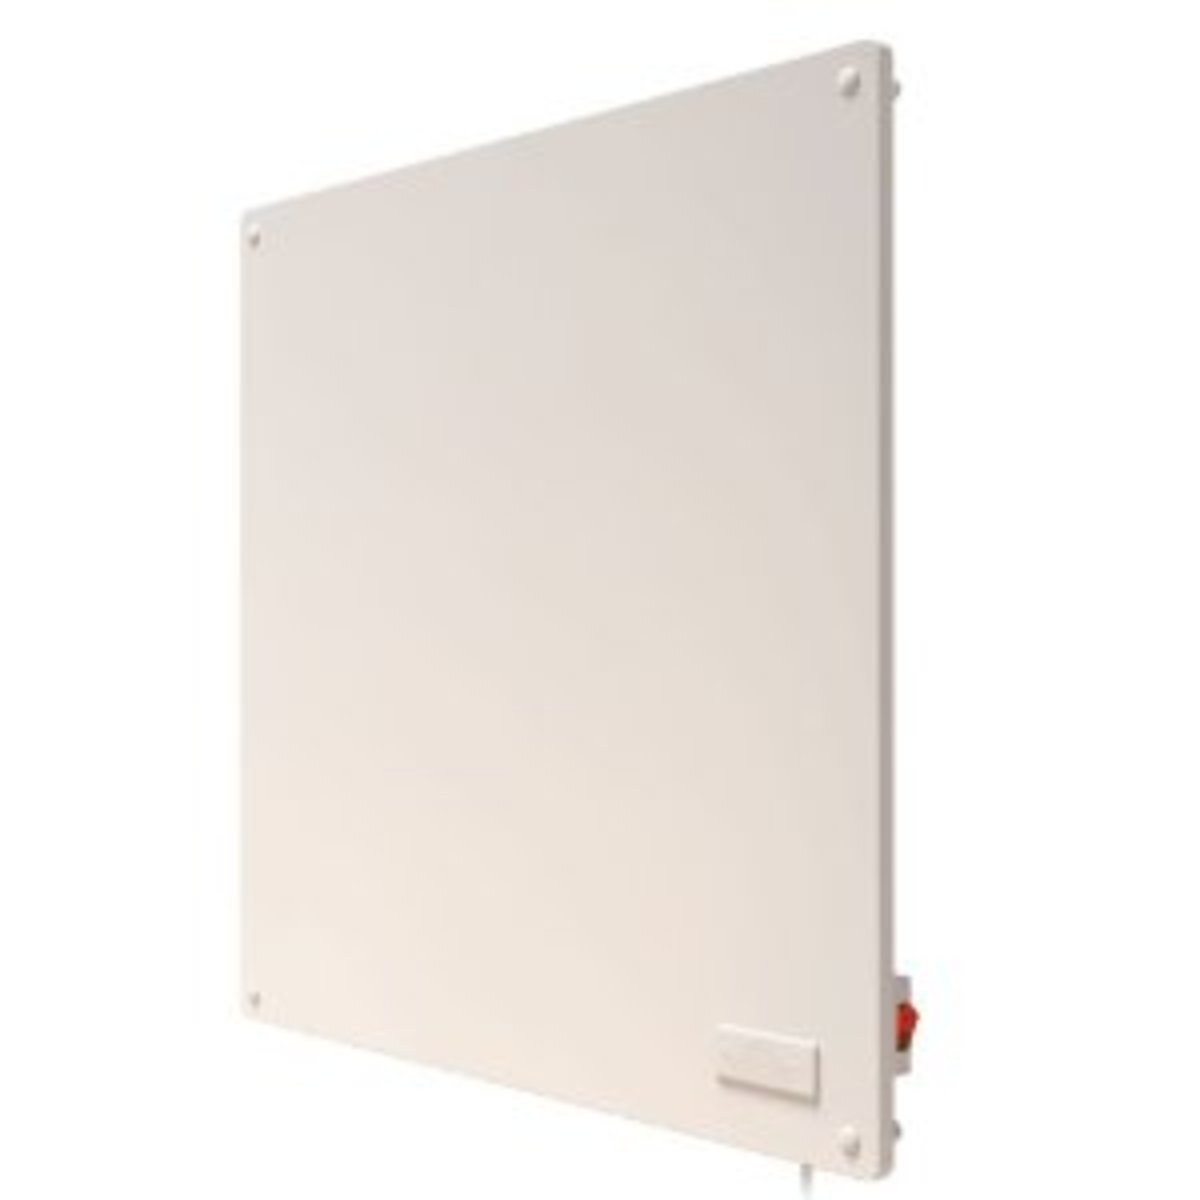 Econo-Heat is a slim, wall mountable panel that blends into any decor.